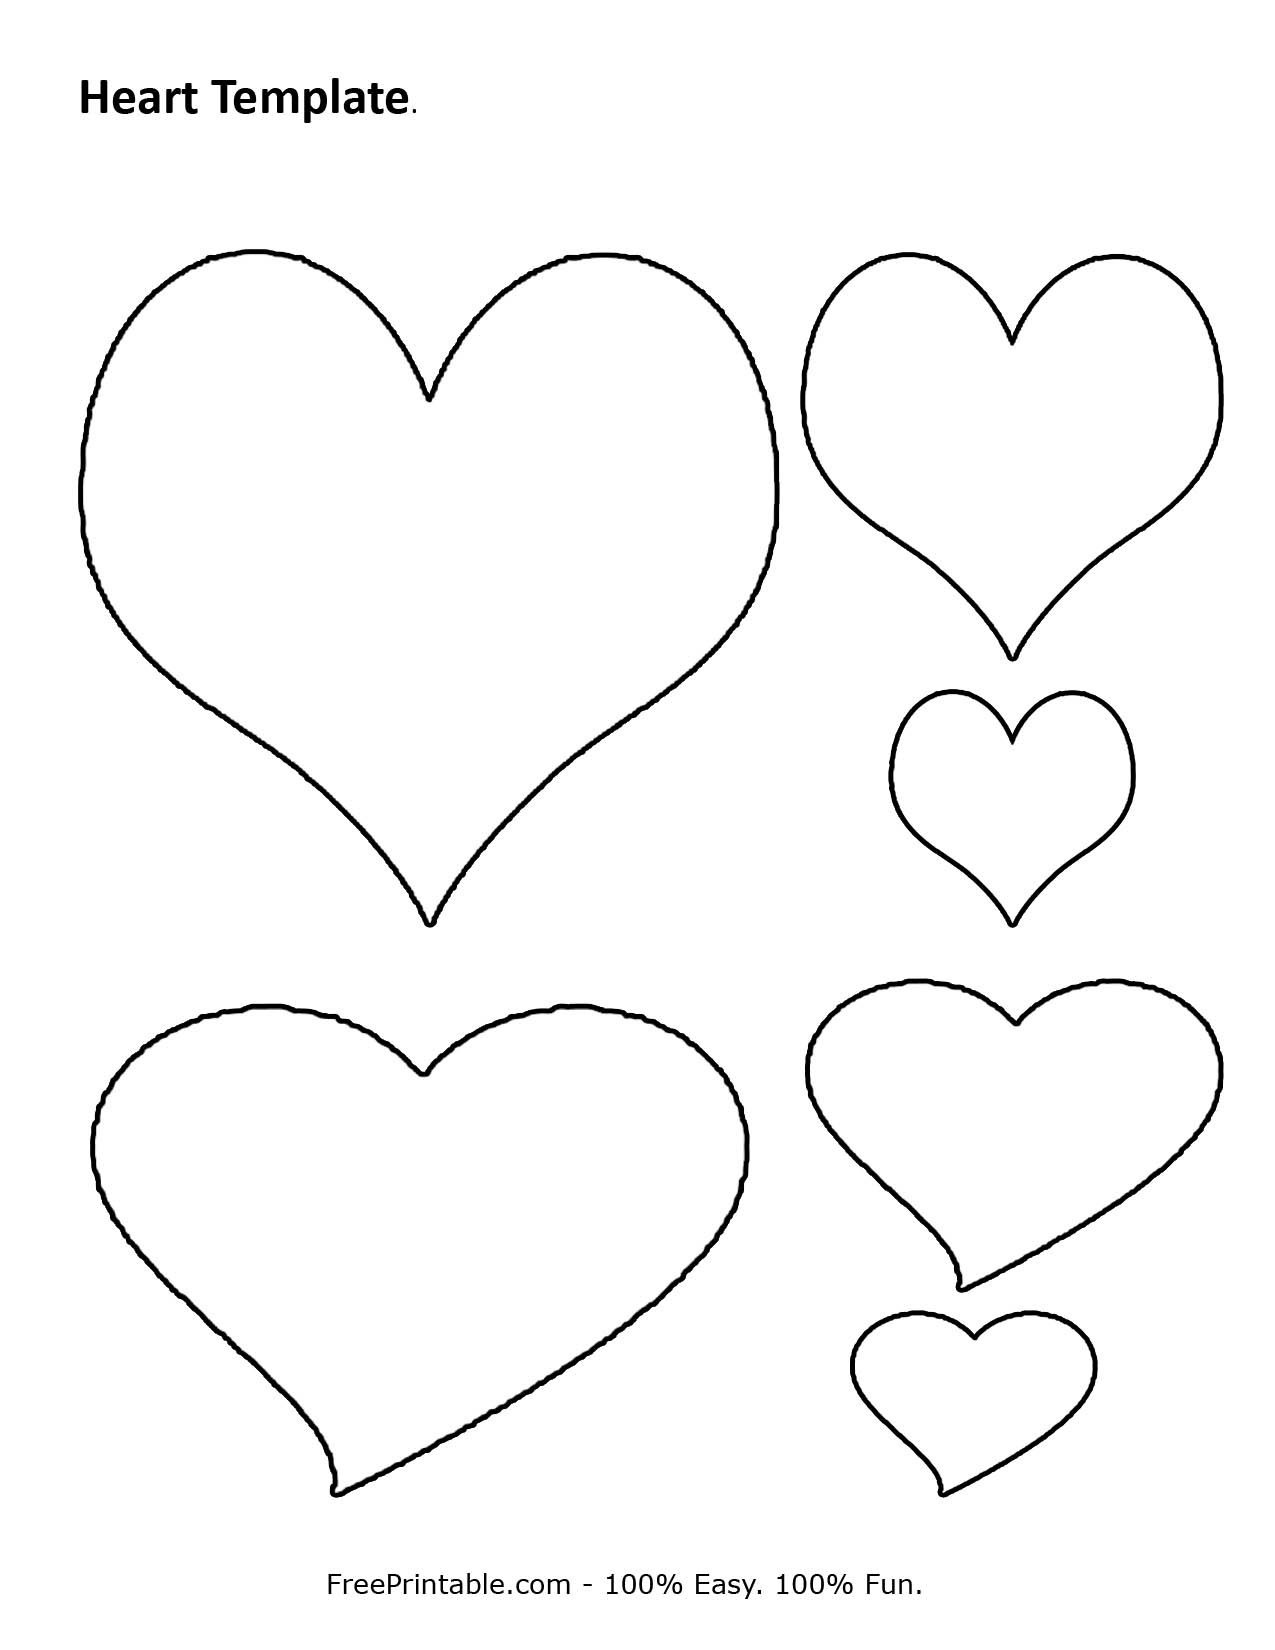 Free Printable Heart Template | Cupid Has A Heart On | Heart - Free Printable Heart Designs